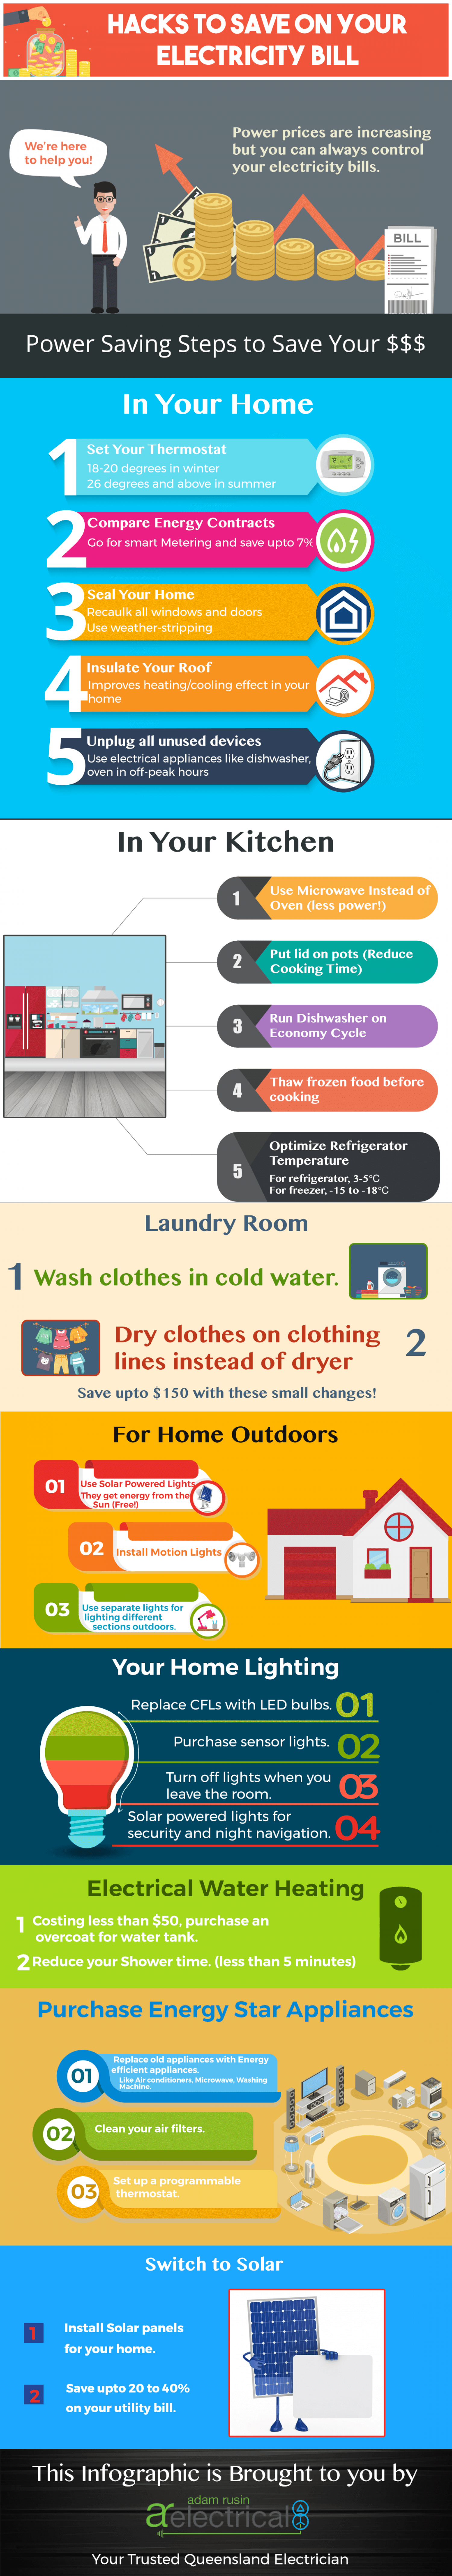 How to Save on Your Electricity Bill at Home?  Infographic